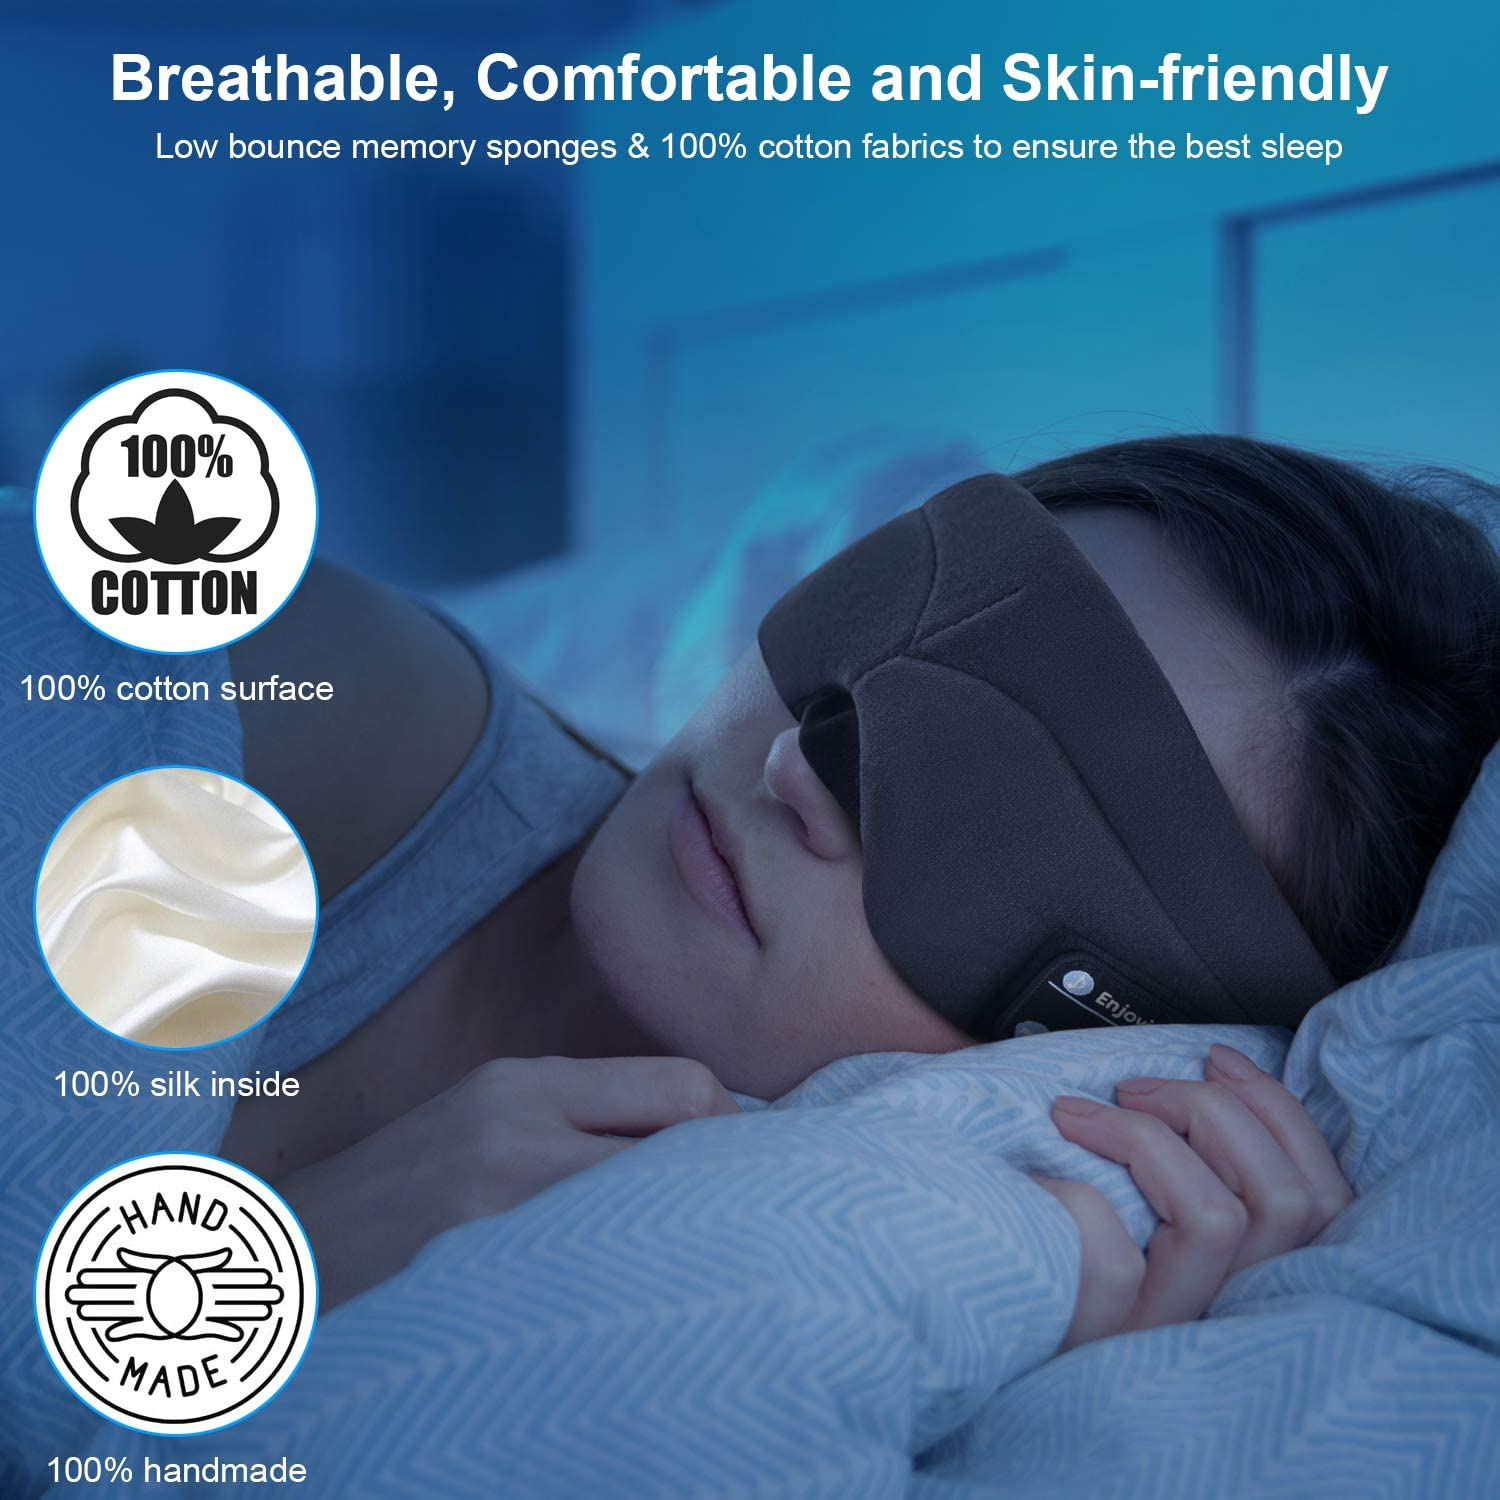 Bluetooth Sleeping Eye Mask with Wireless Headphones,ERNSTING Wireless Bluetooth Music Headset with Adjustable Built-in Speaker and Microphone Calls Washable Perfect for Travel and Sleep Black